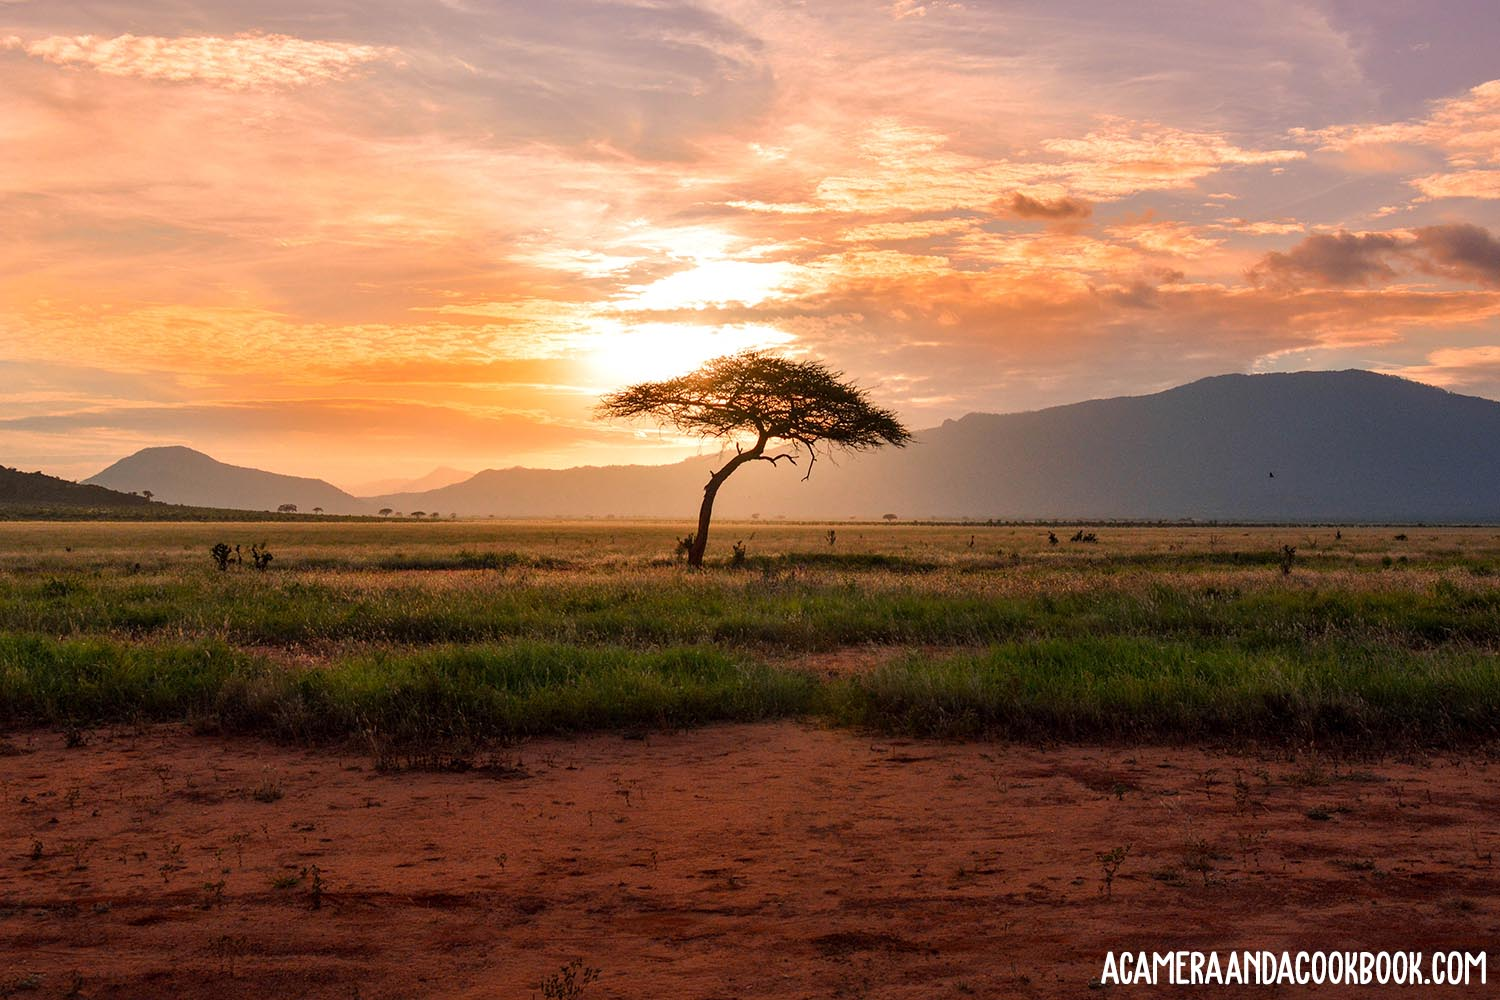 Tranquility, Culture, and  Adventure in Africa